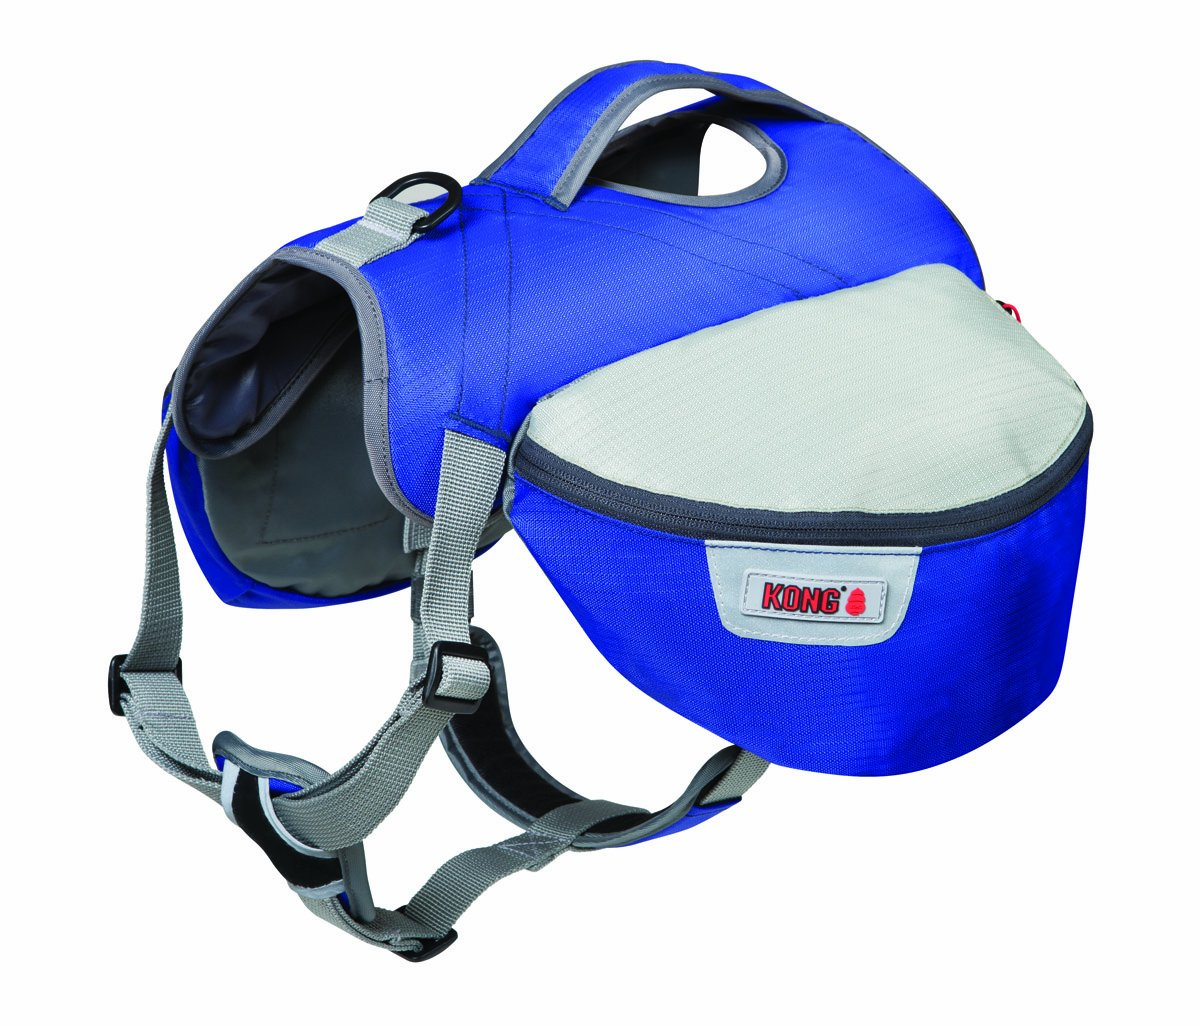 Future Sports Products International KONG SPORT Trek Travel Pack for Dogs, Medium, Blue/Silver